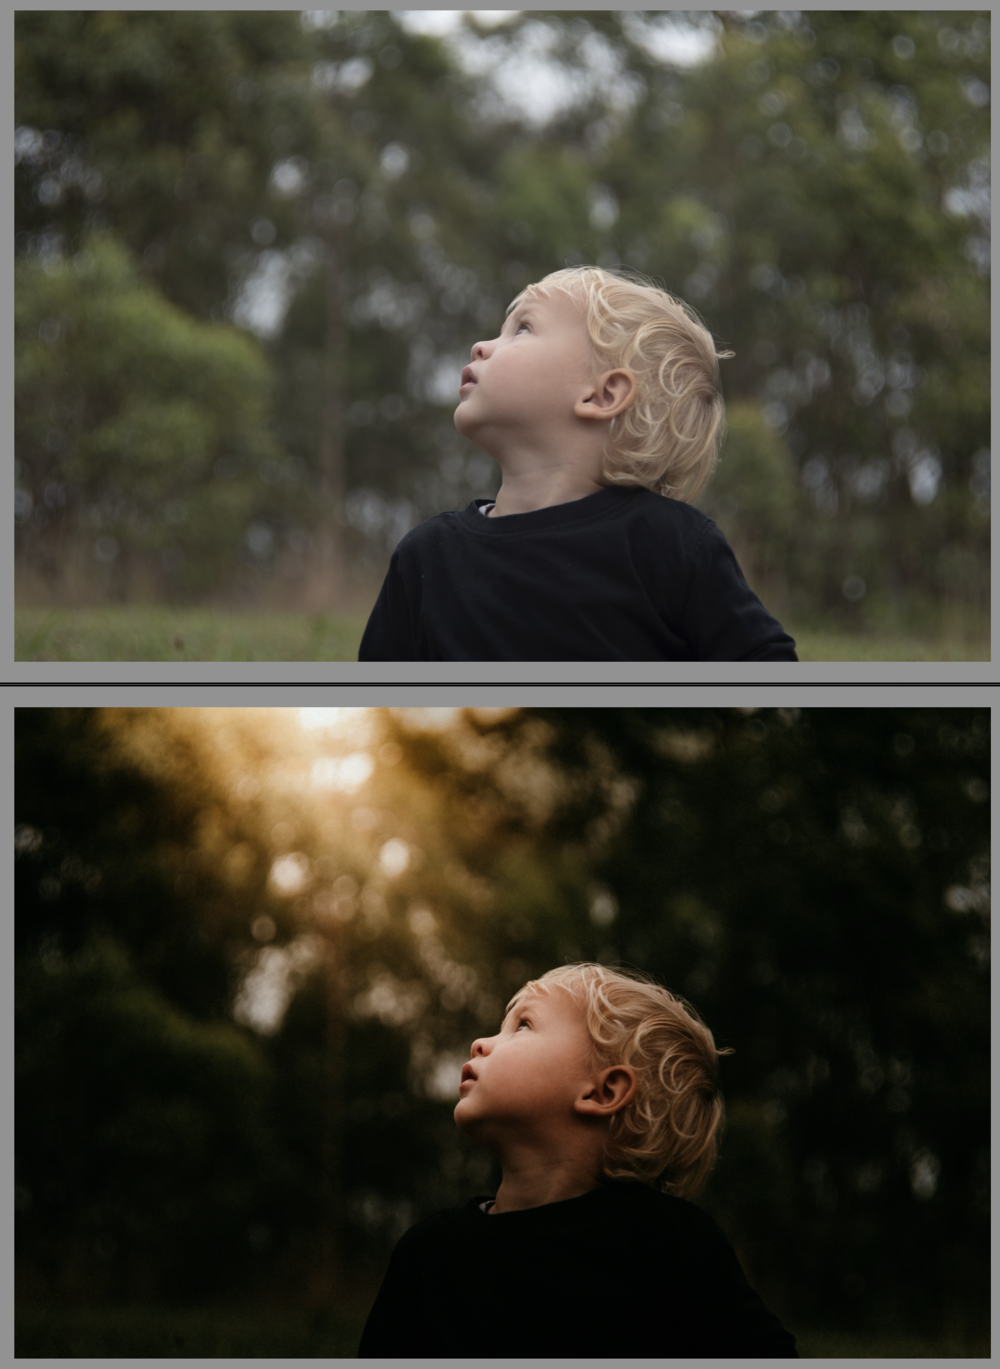 First time using the tools in Lightroom to make an ordinary photo magical